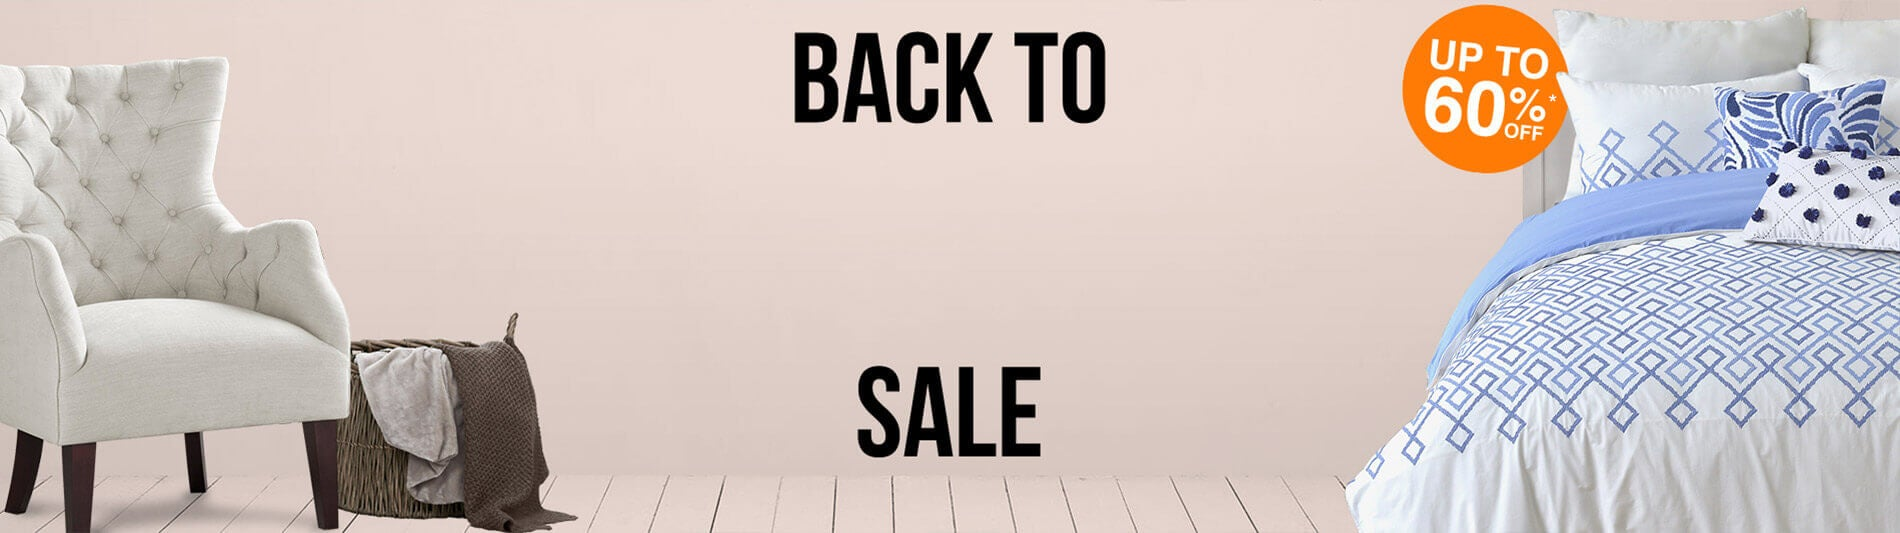 Back to Comfort sale - Up to 60% off*